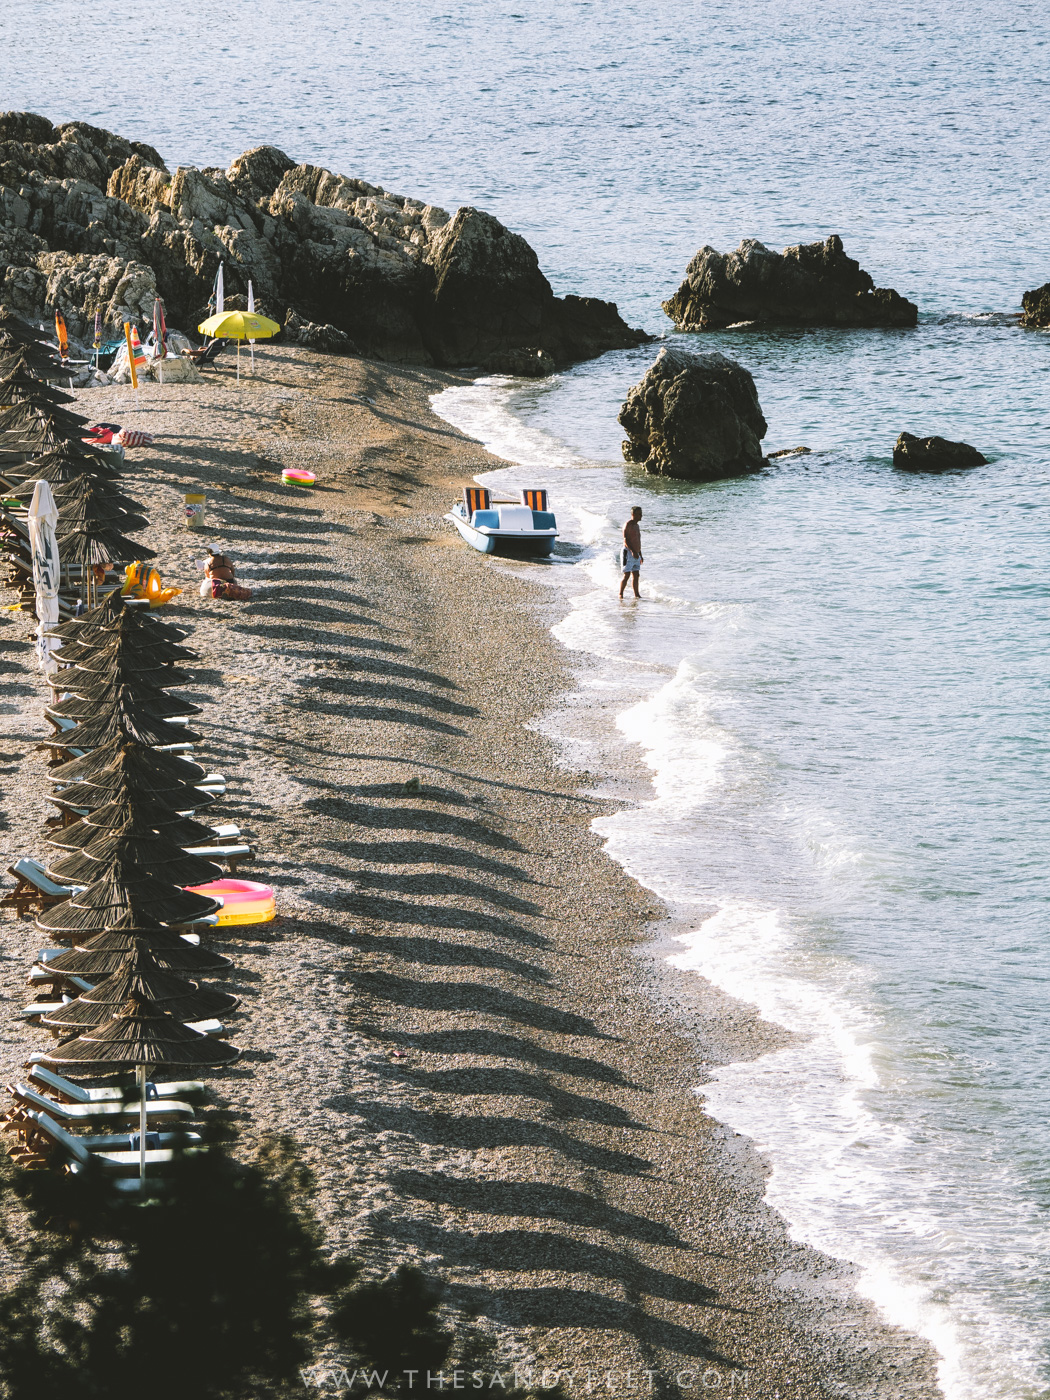 A Short Guide To The Best Things To Do In Himara, Albania: Where To Go, Stay And Eat In Albania's Best Beach Town And A Firm Favorite Along The Albanian Riviera.